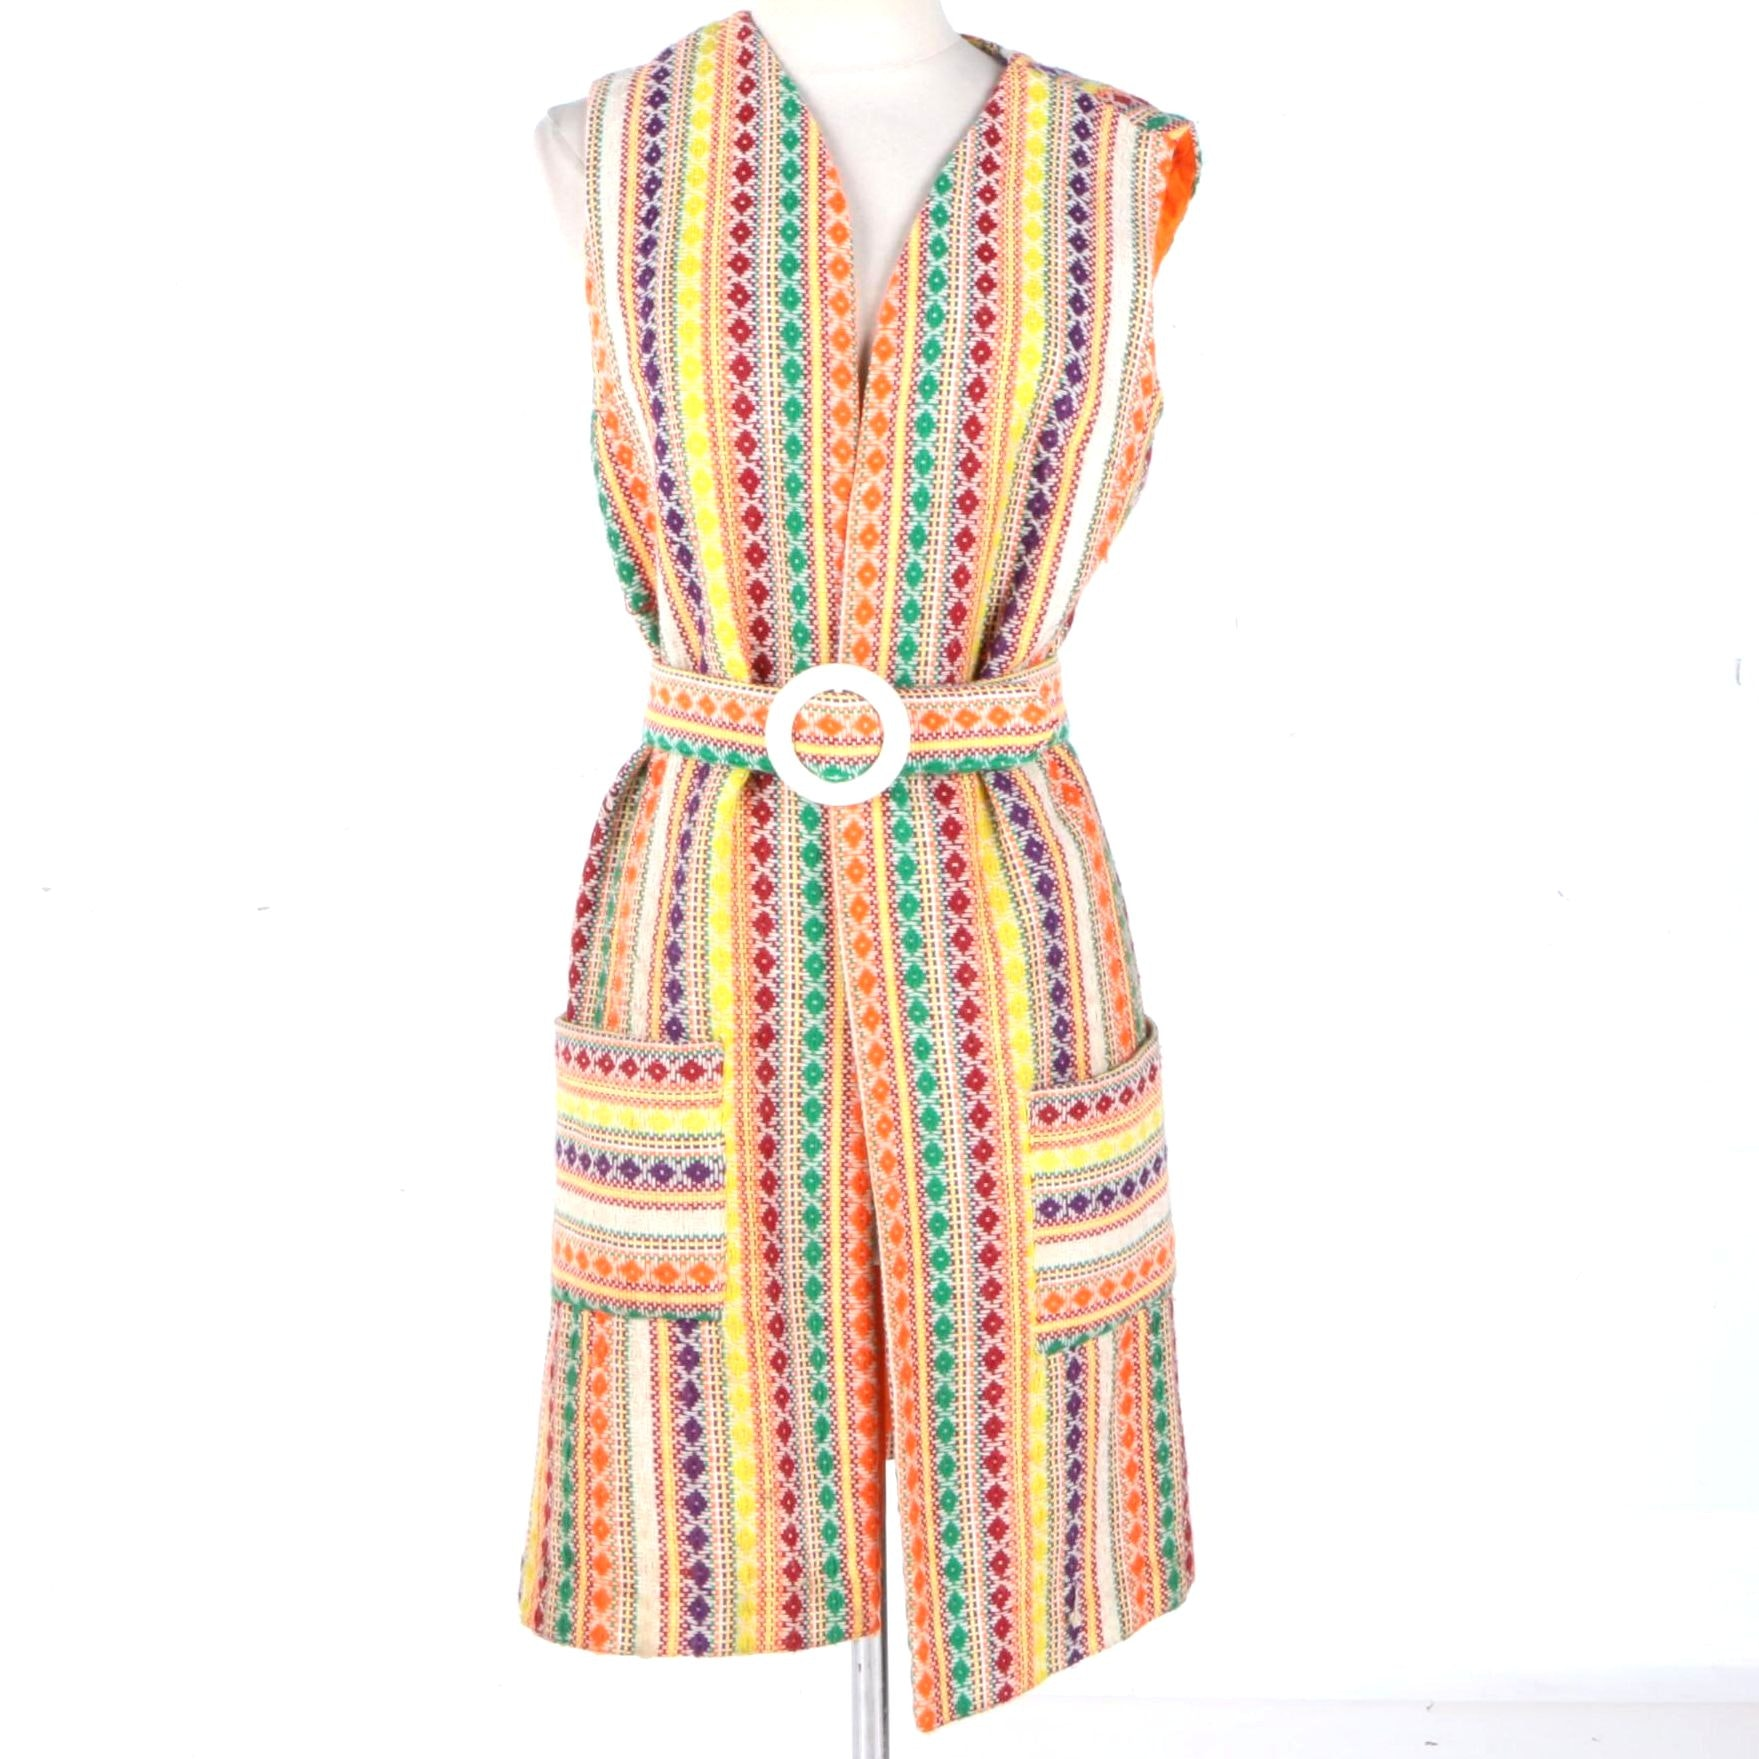 Women's Vintage Colorful Woven Vest and Belt